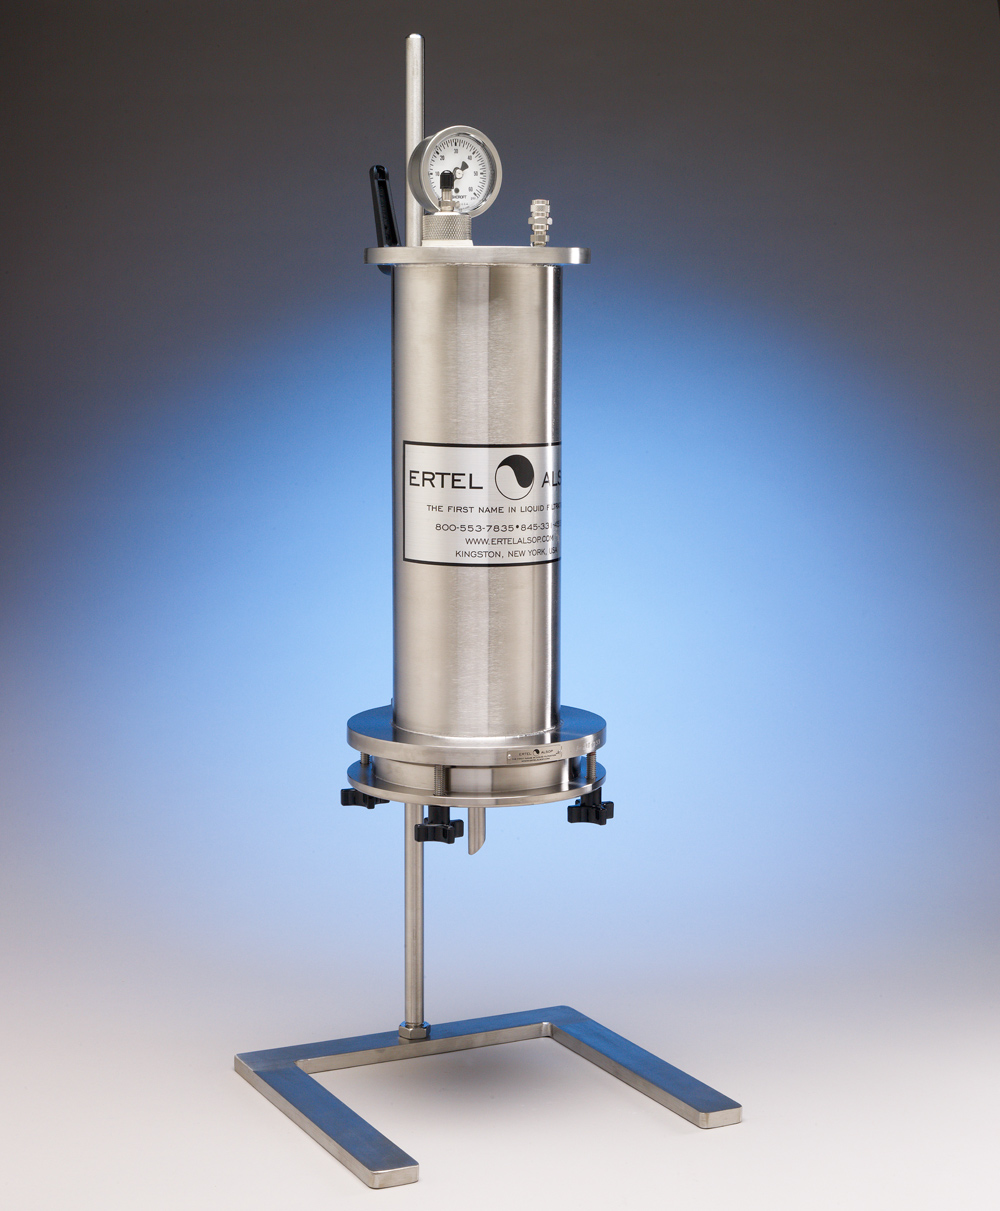 Stainless Steel and Pyrex Laboratory Filter